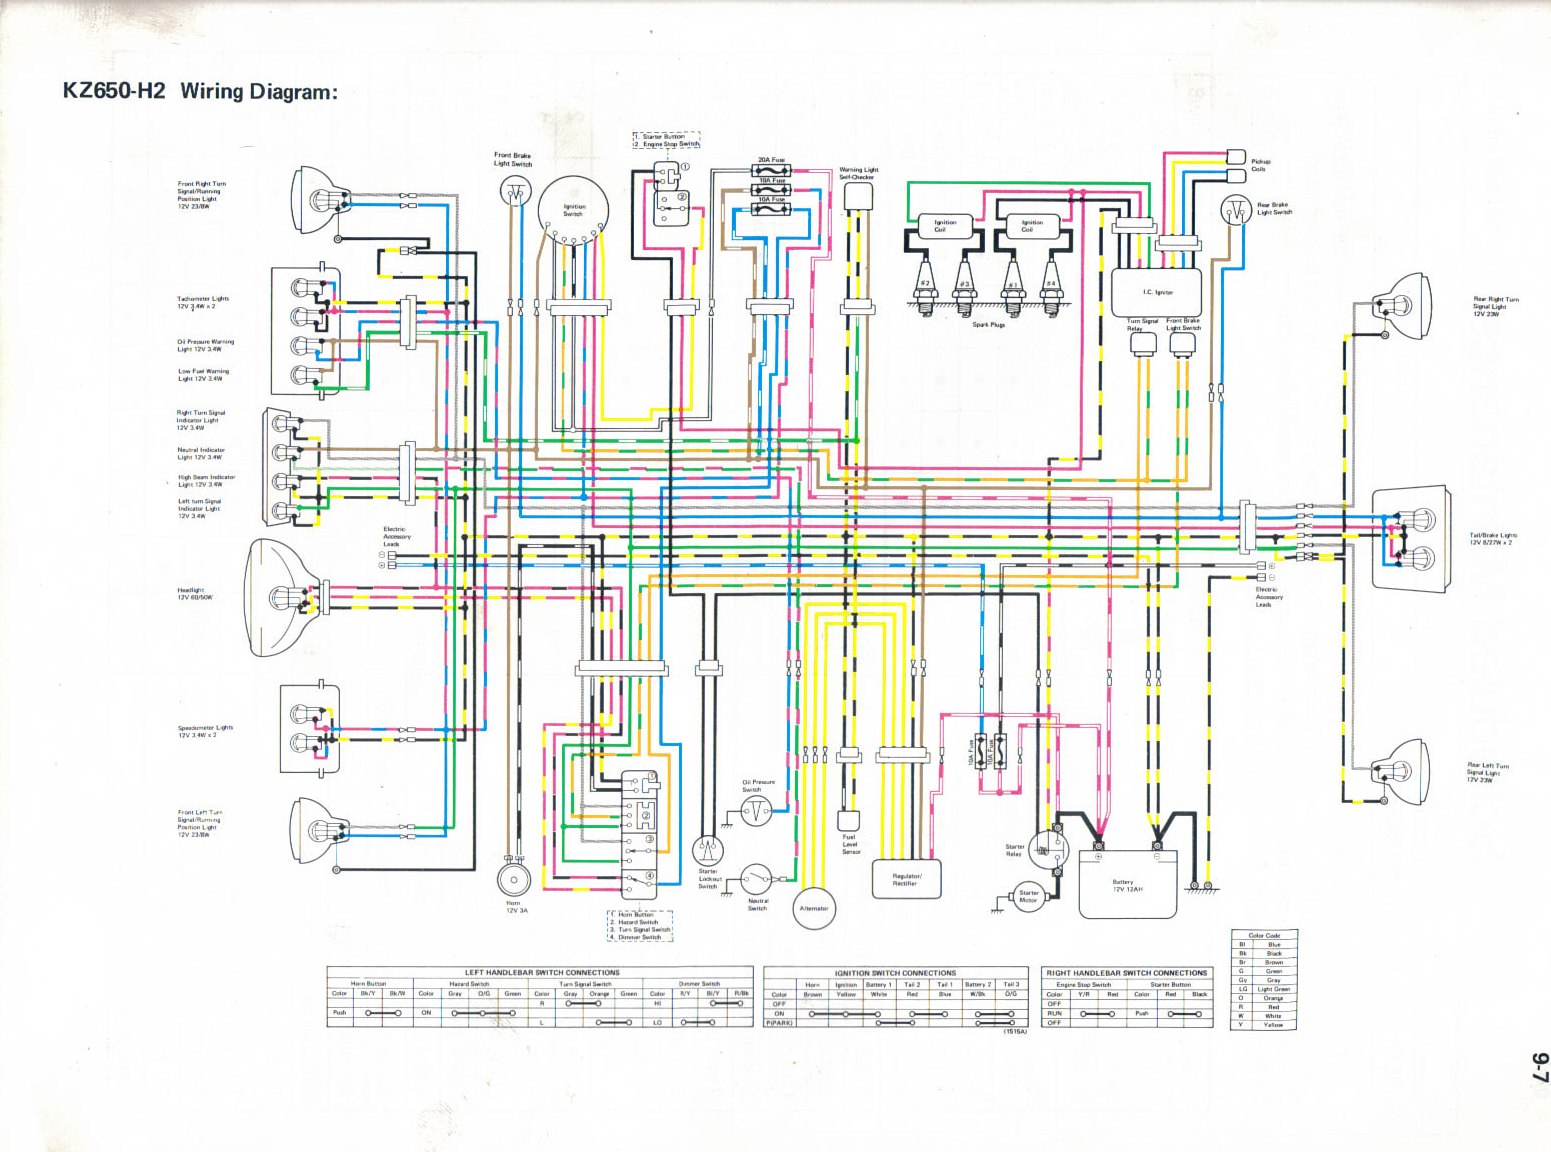 KZ650 H2 kawasaki z750 wiring diagram kawasaki wiring diagrams instruction kz750 wiring diagram at crackthecode.co